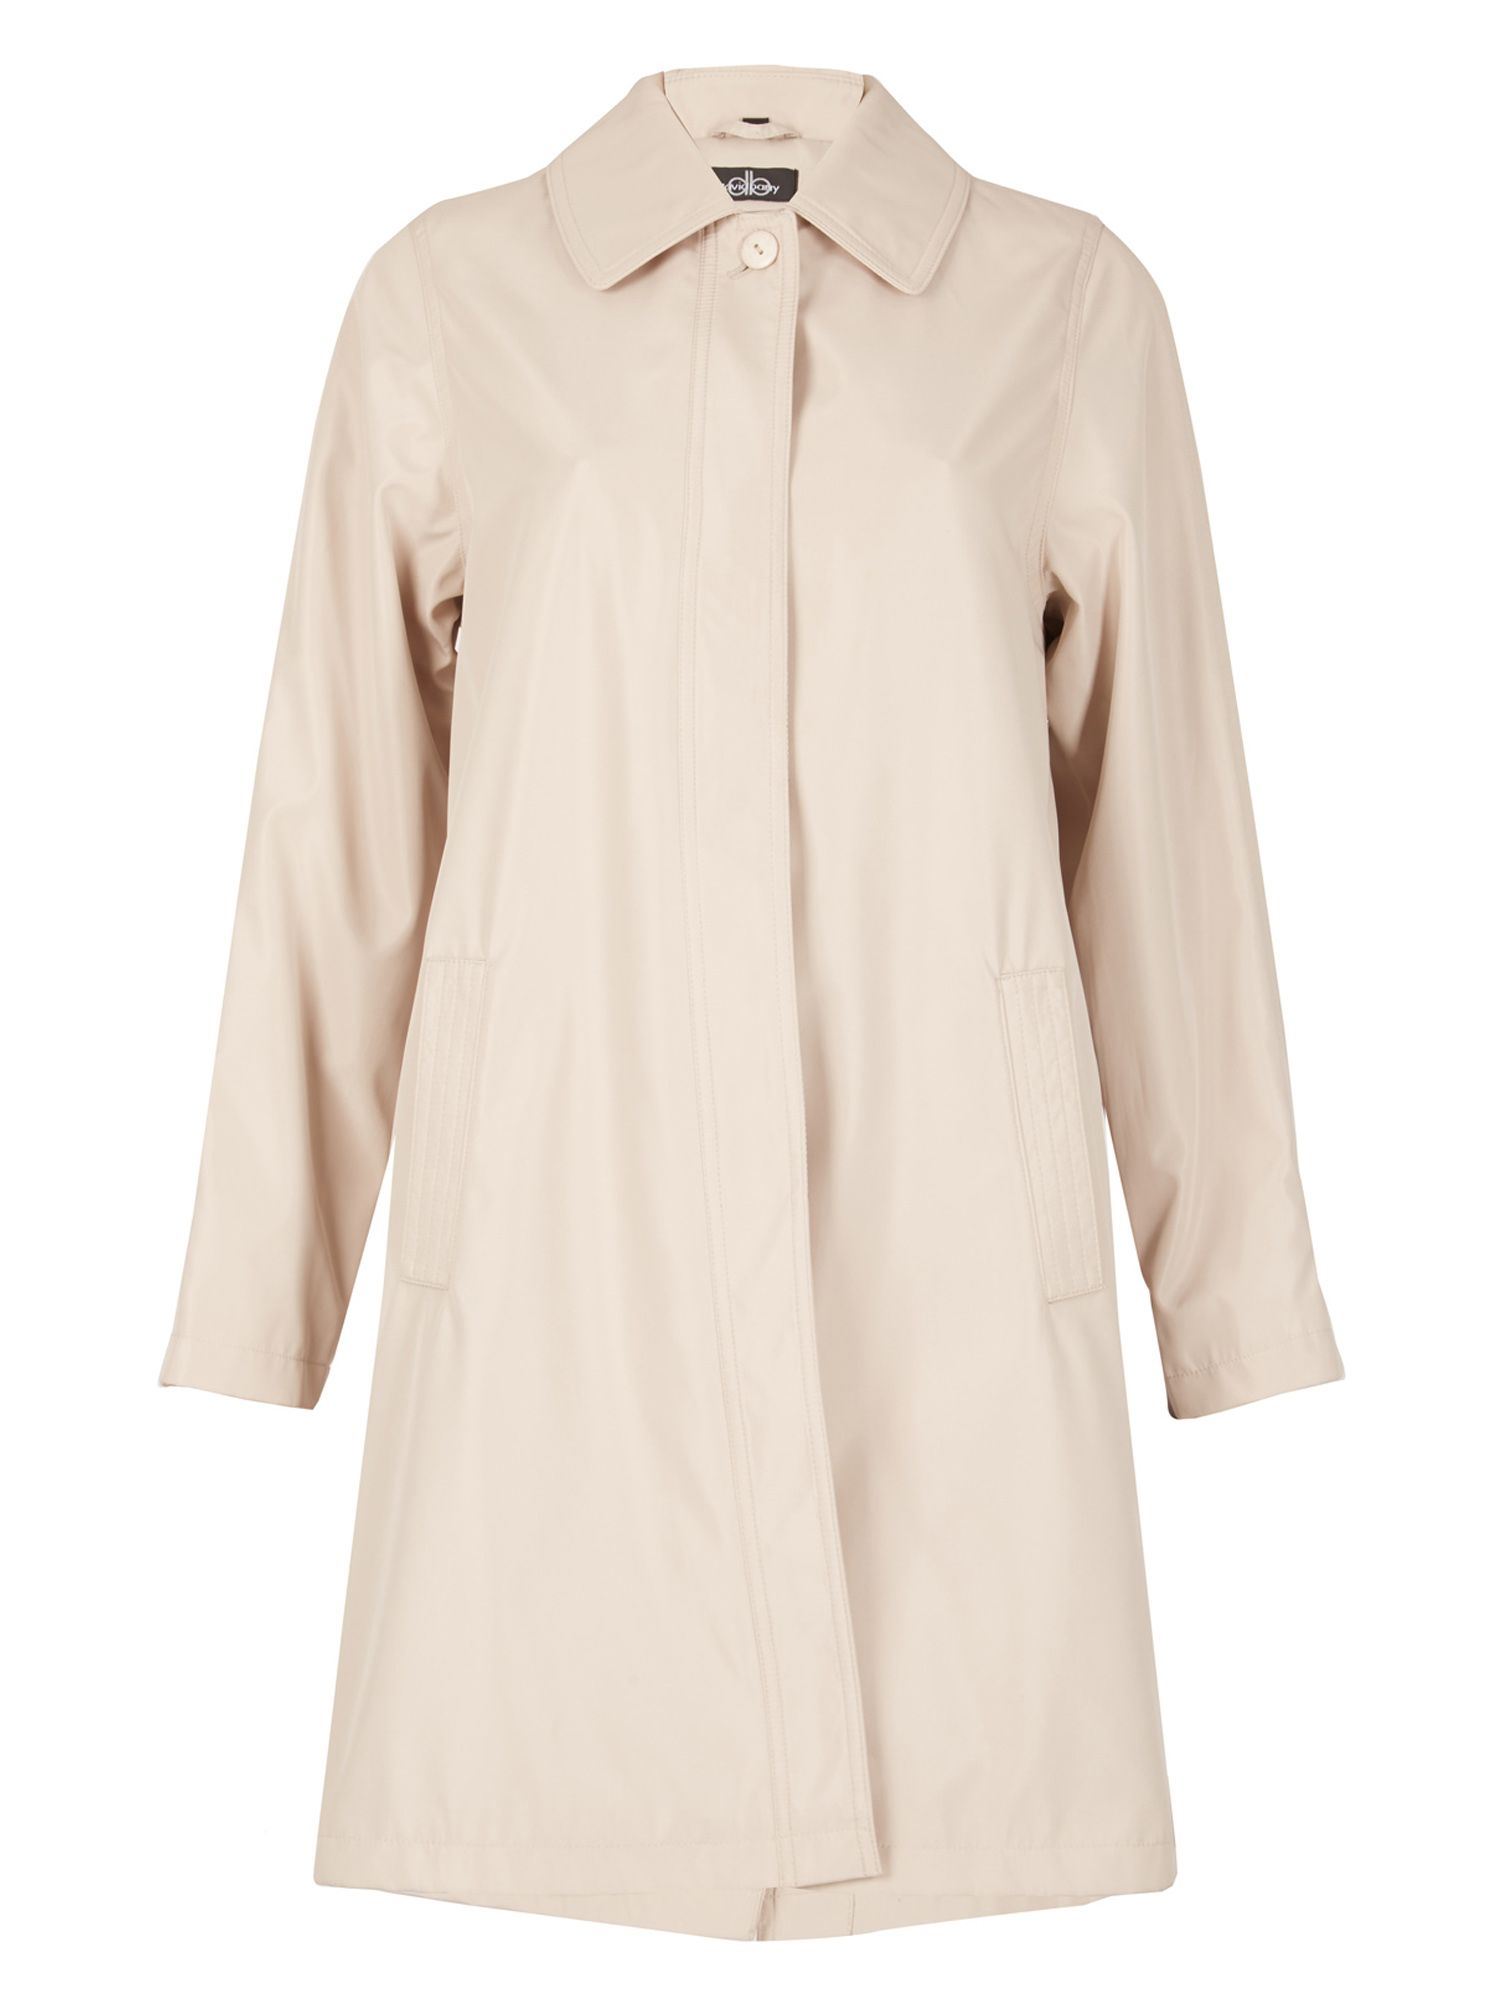 David Barry Ladies Raincoat, Stone